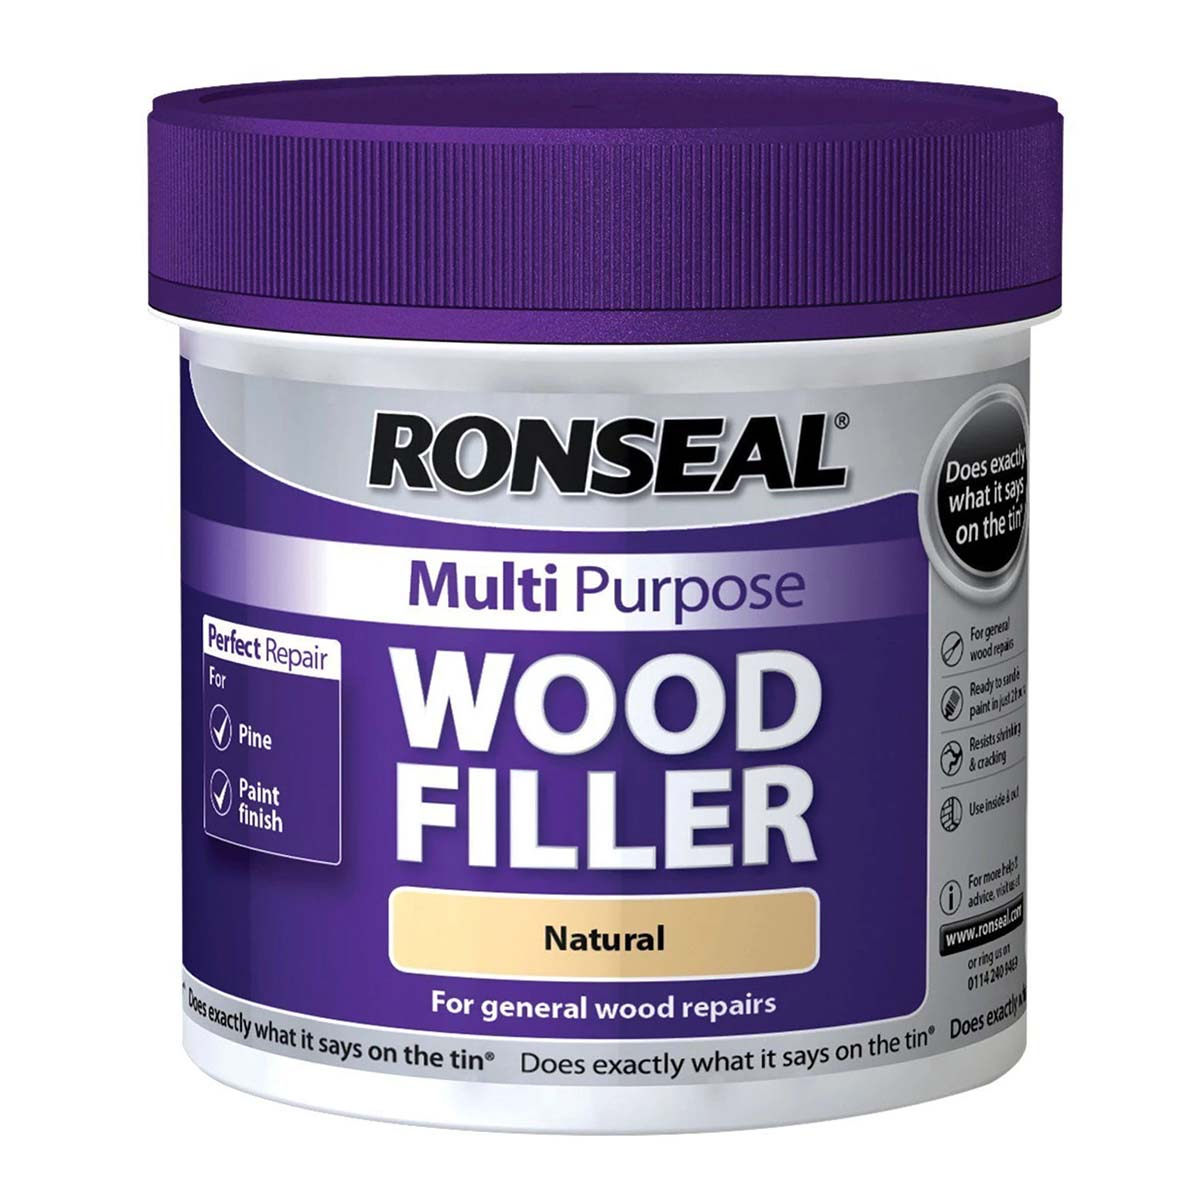 Ronseal Multi Purpose Wood Filler Natural 250G (34735)